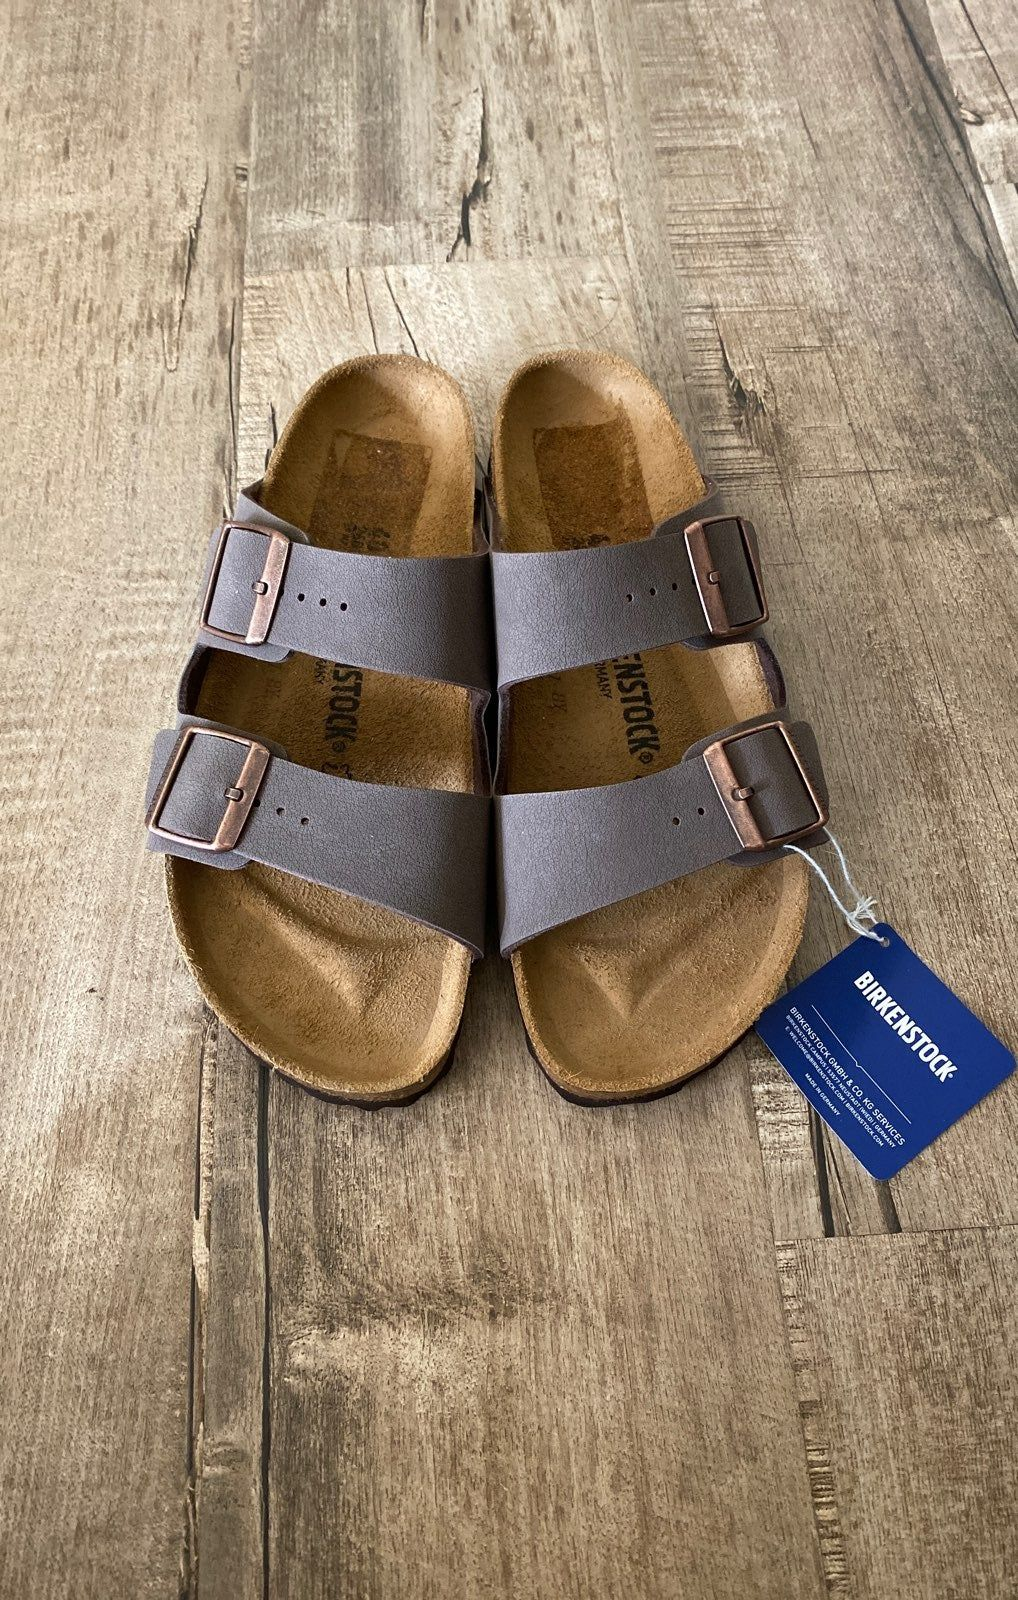 Pin By Malick Mohamed On Fashion Design In 2020 Birkenstock Sandals Birkenstock Fashion Design